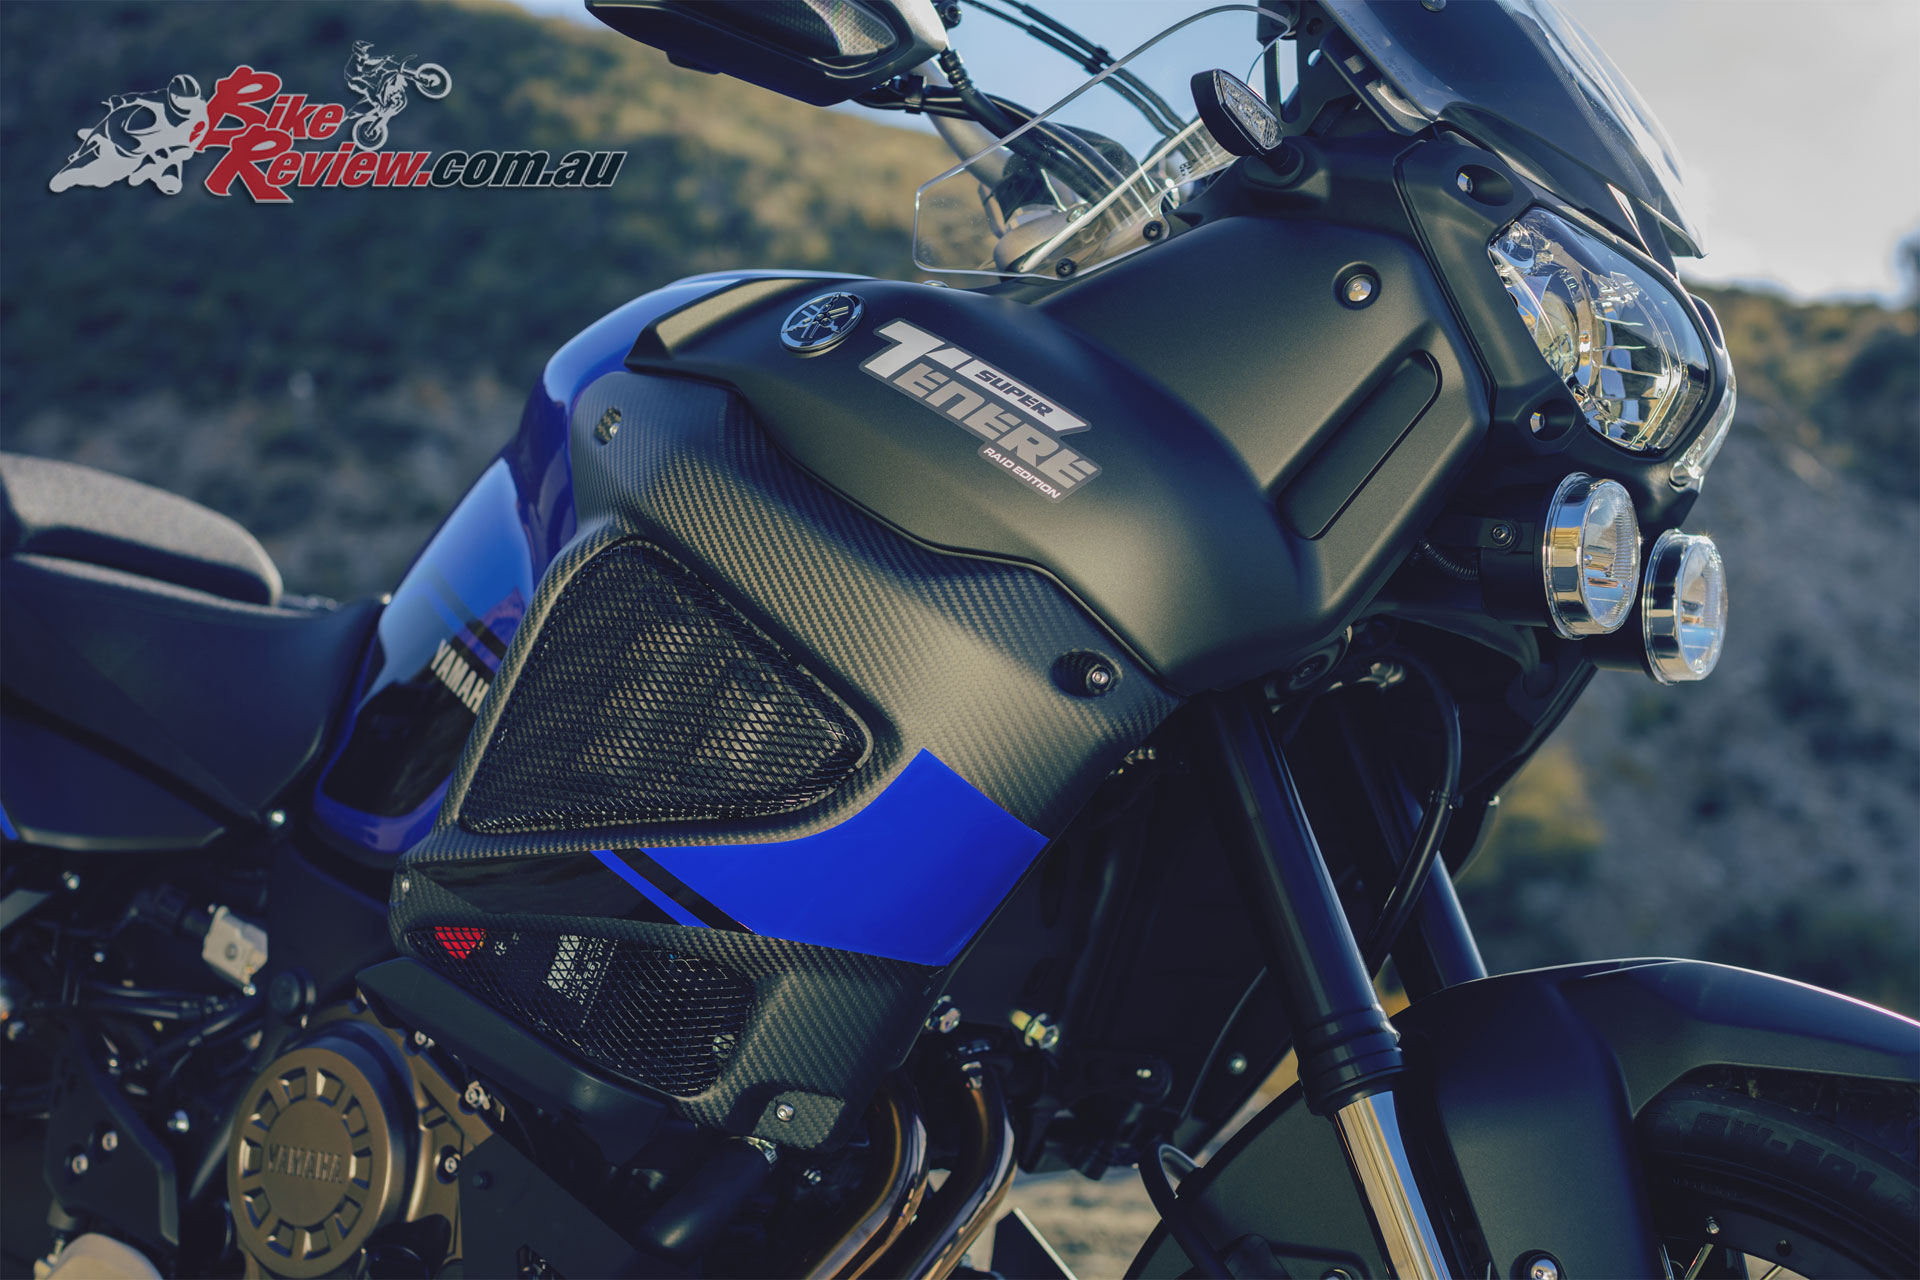 2018 Yamaha Super Tenere Raid Edition Amp Updated Yzf R1m